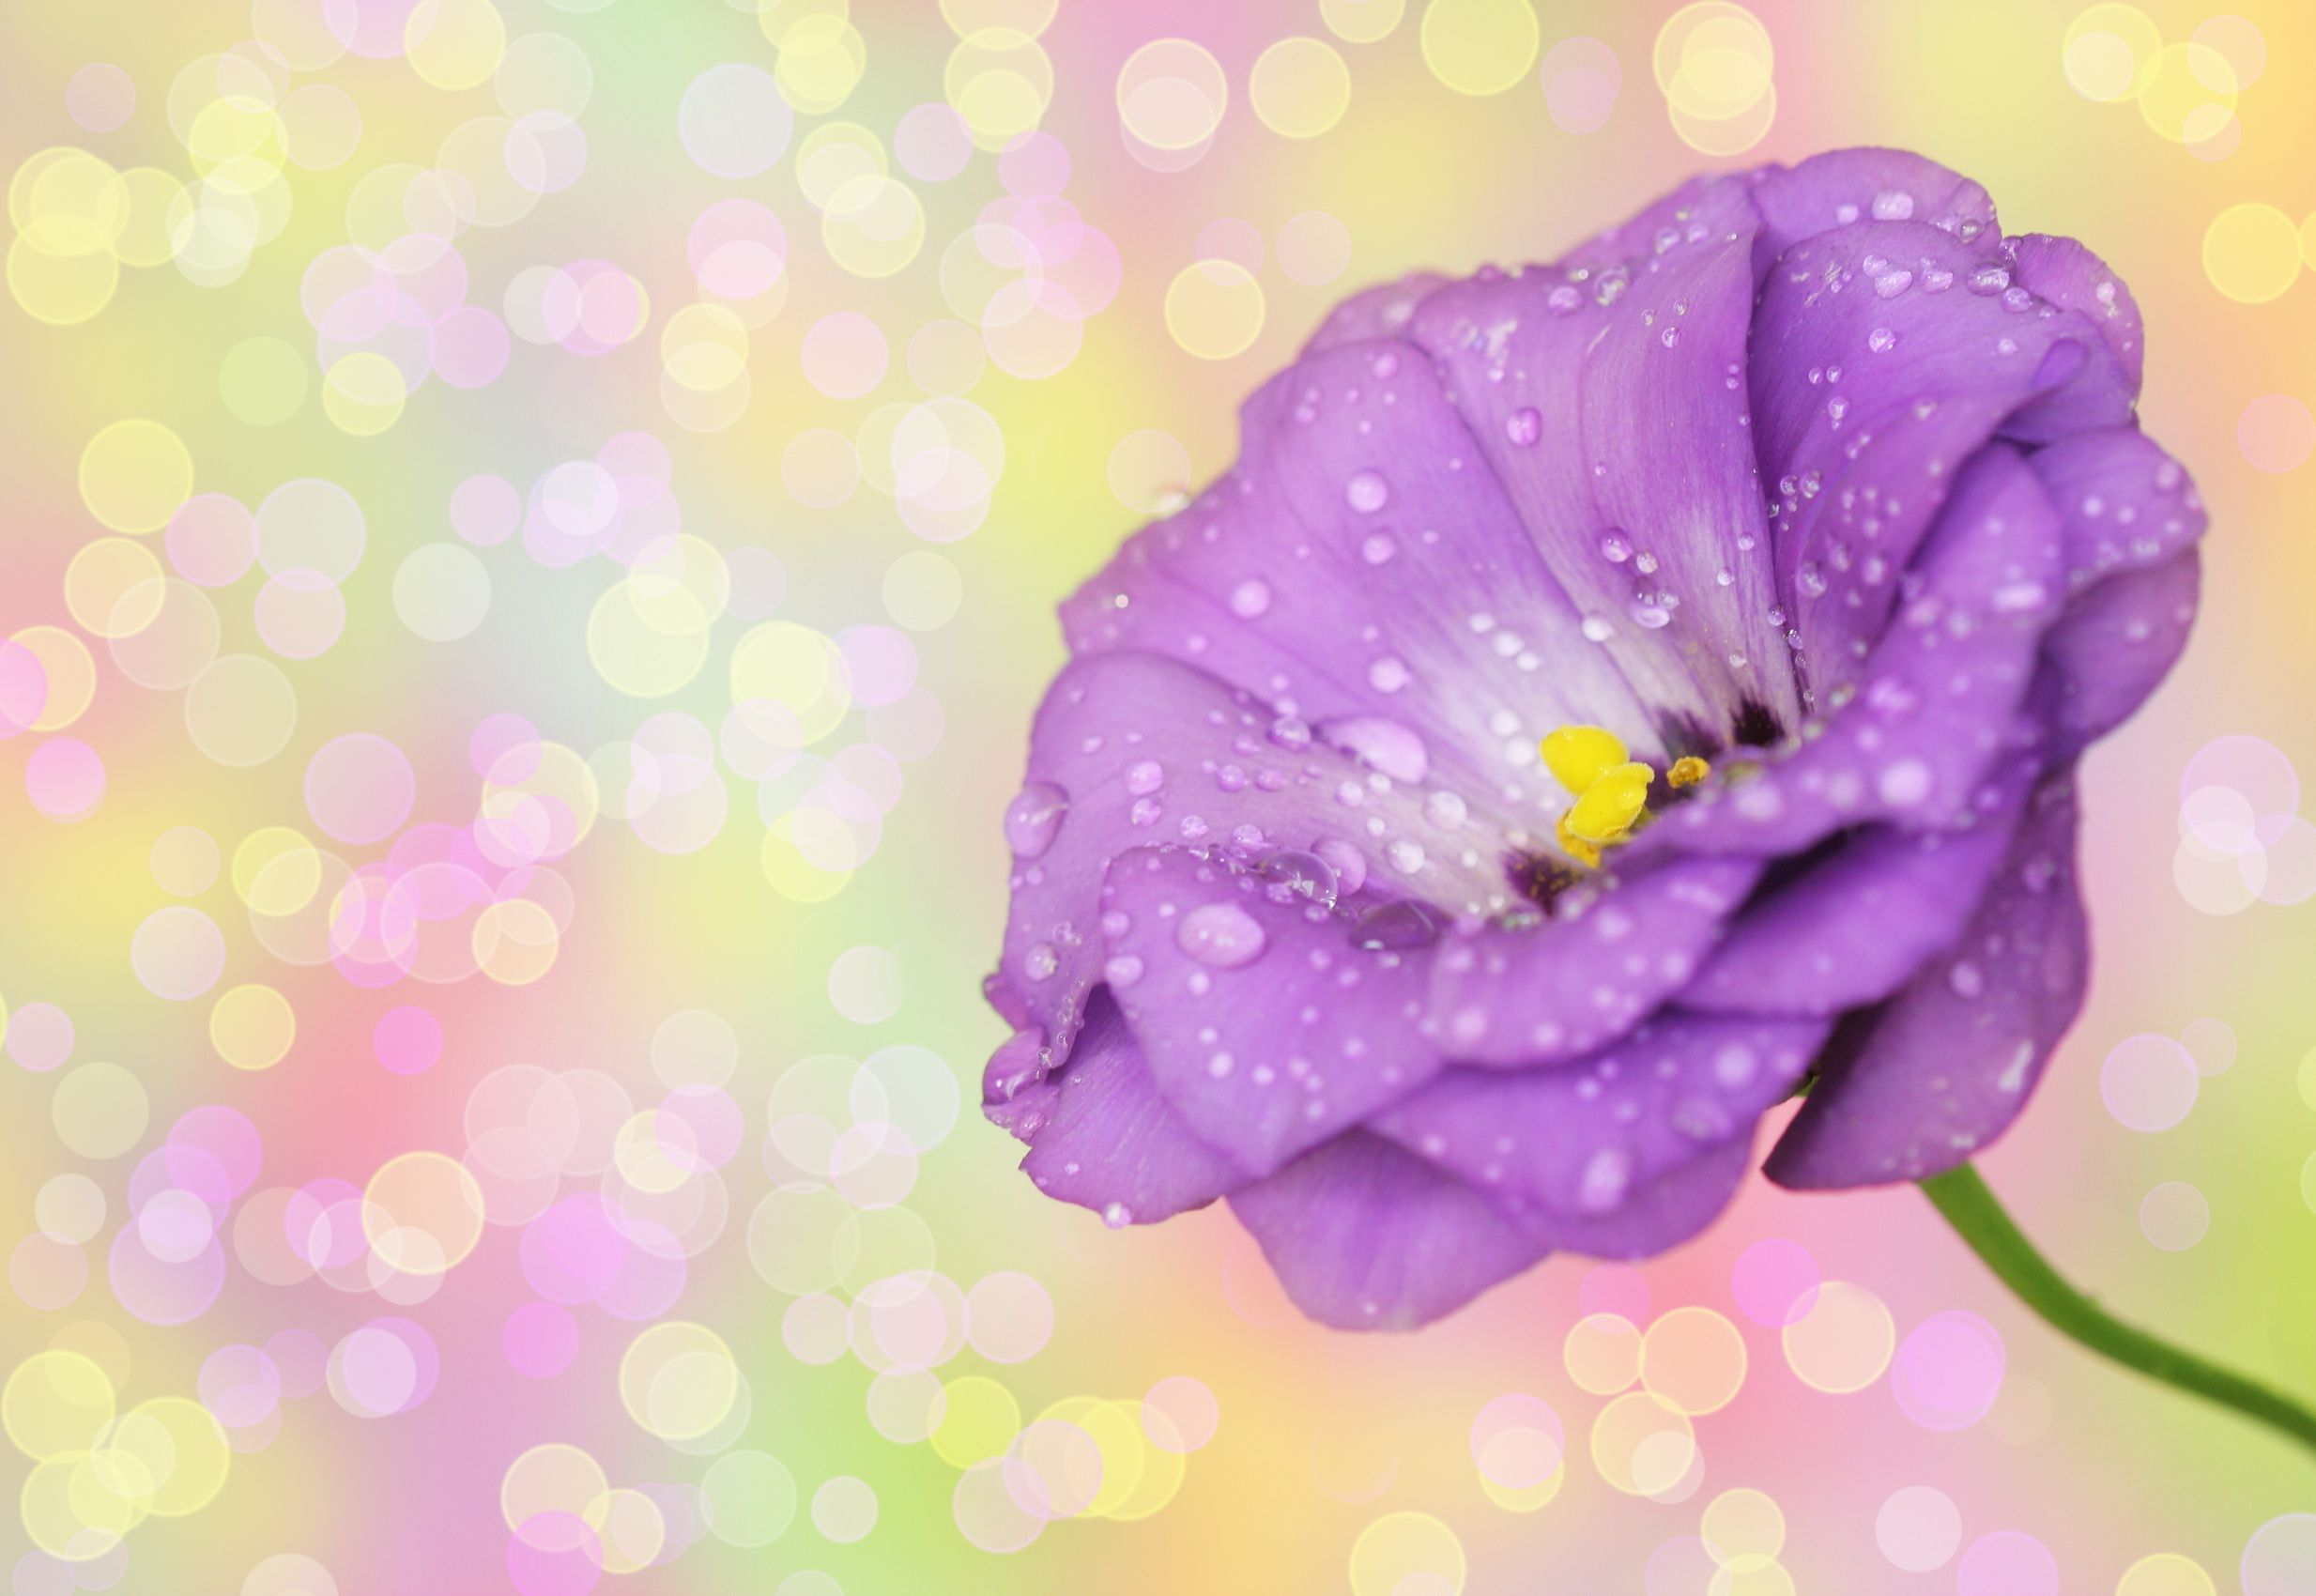 10 Most Beautiful Flowers In The World Flower Meaning